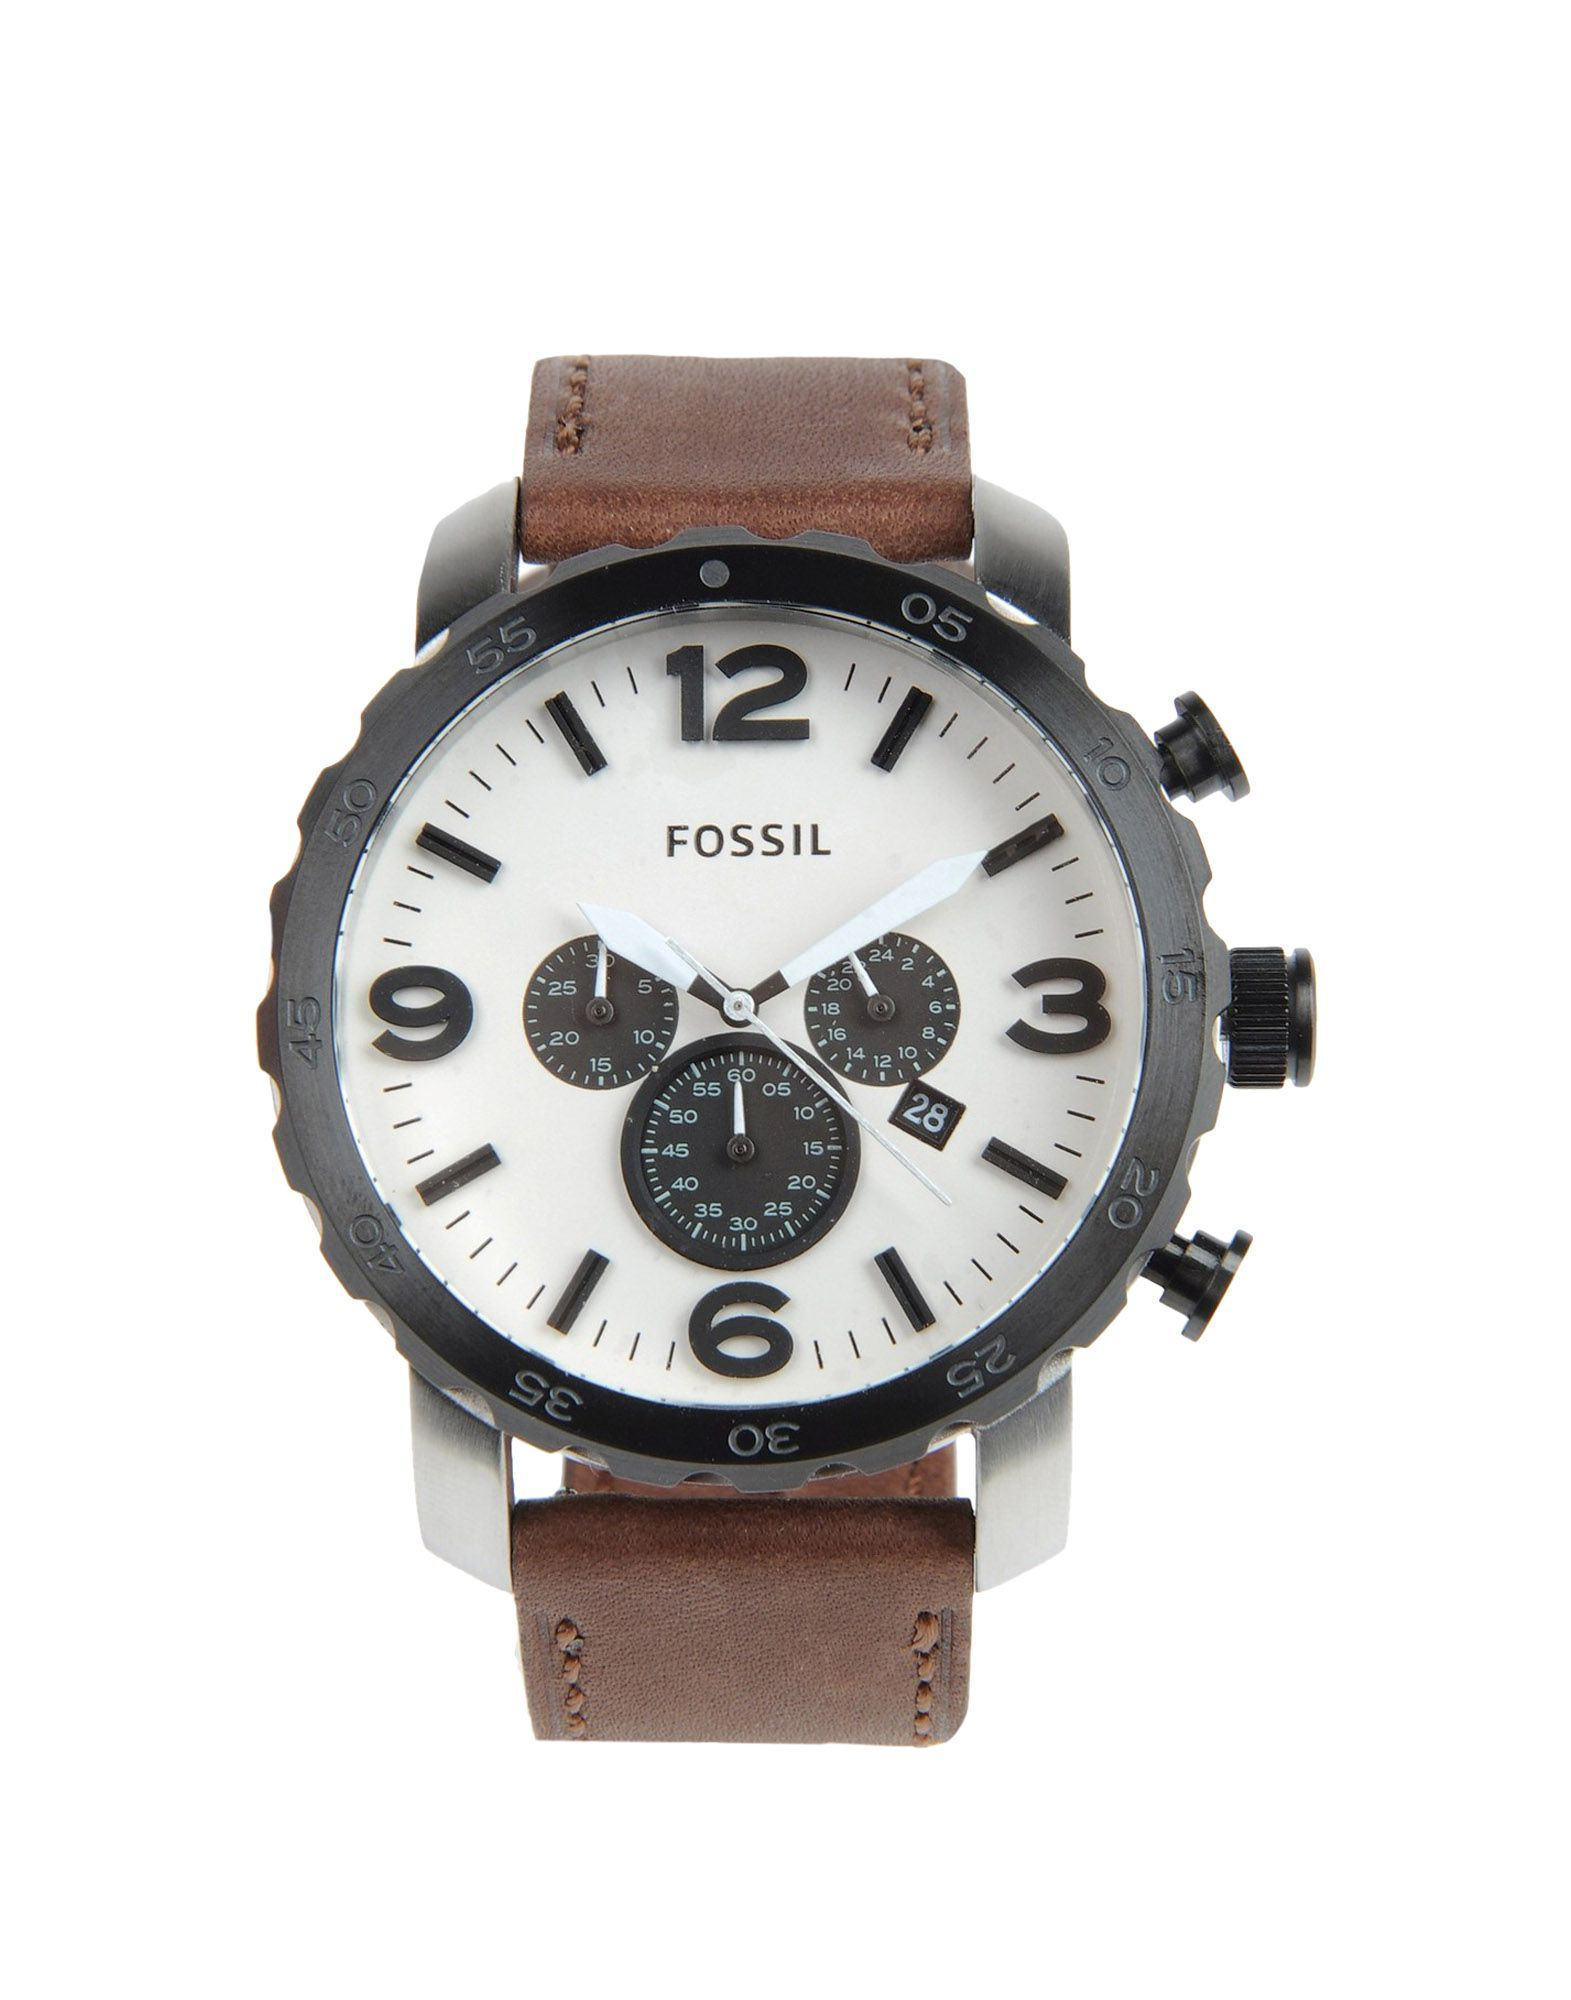 c399e72358f Fossil Men - Watches - Wrist watch Fossil on YOOX